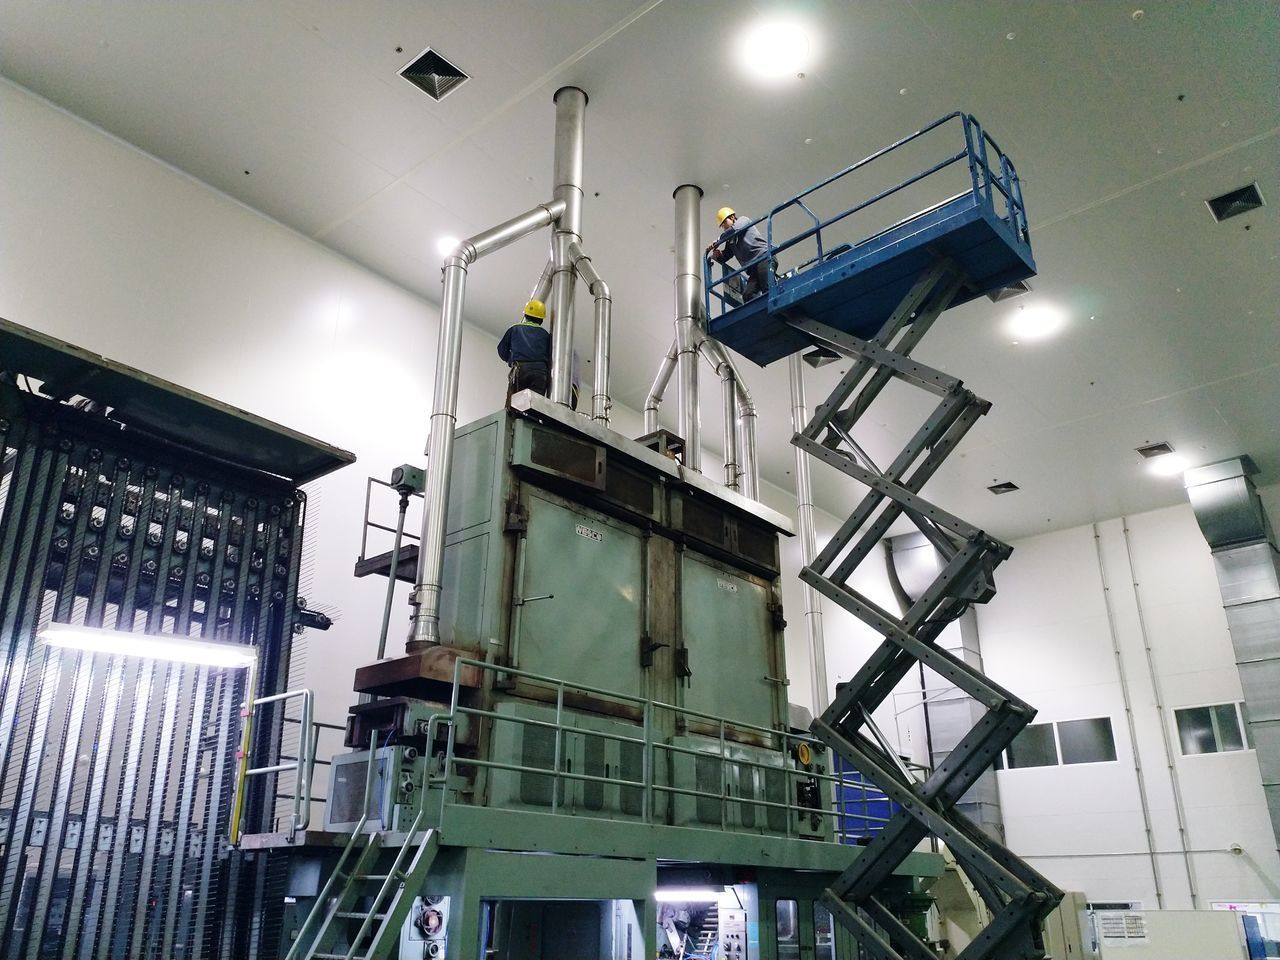 LOW ANGLE VIEW OF ILLUMINATED LIGHTING EQUIPMENT IN FACTORY